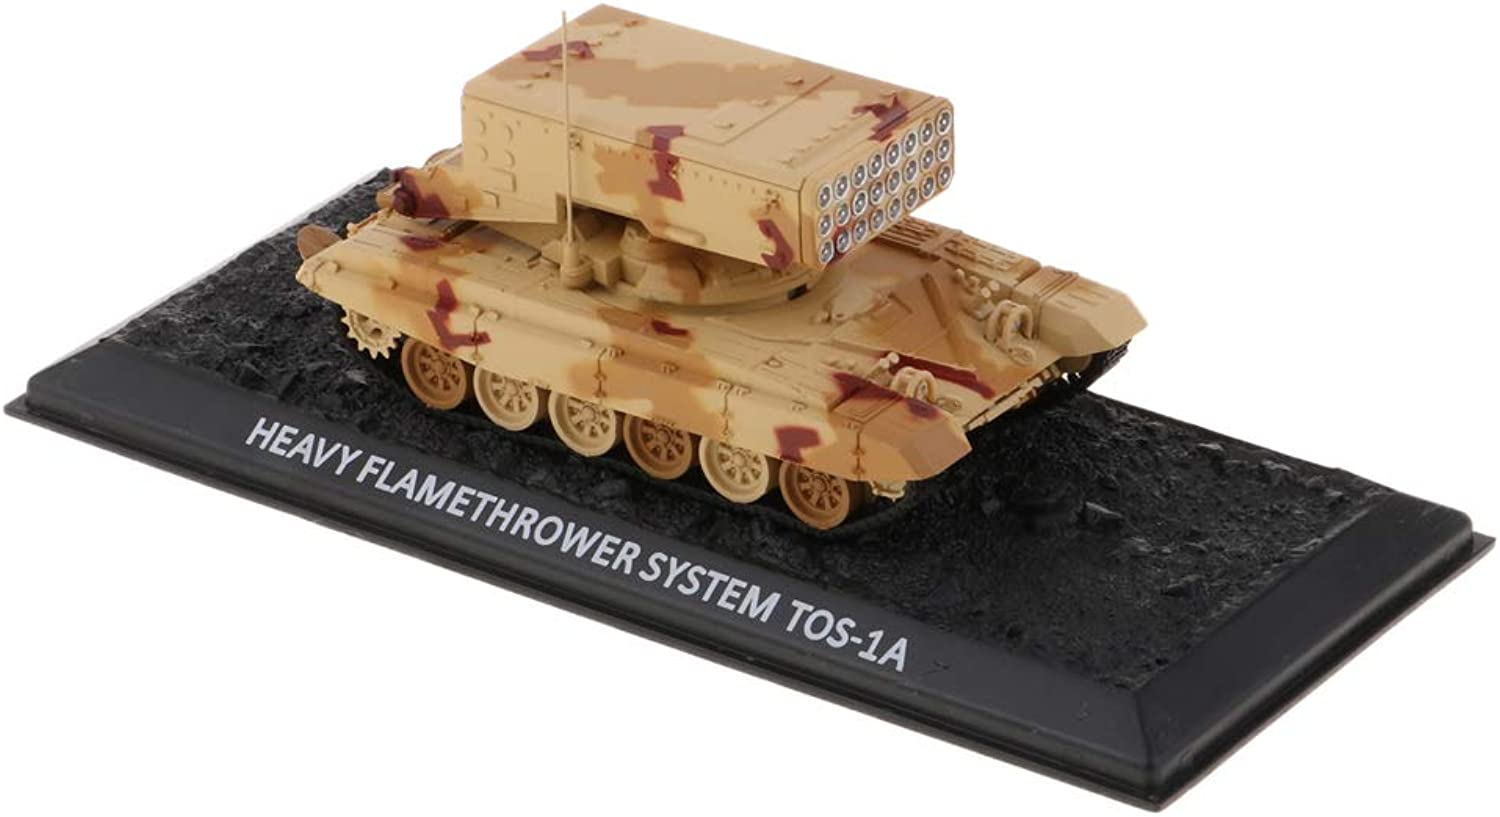 Flameer 1 72 Soviet TOS-1A Alloy Tank Army Model Military Sand Table Toys Kids Adults Collectible Gifts